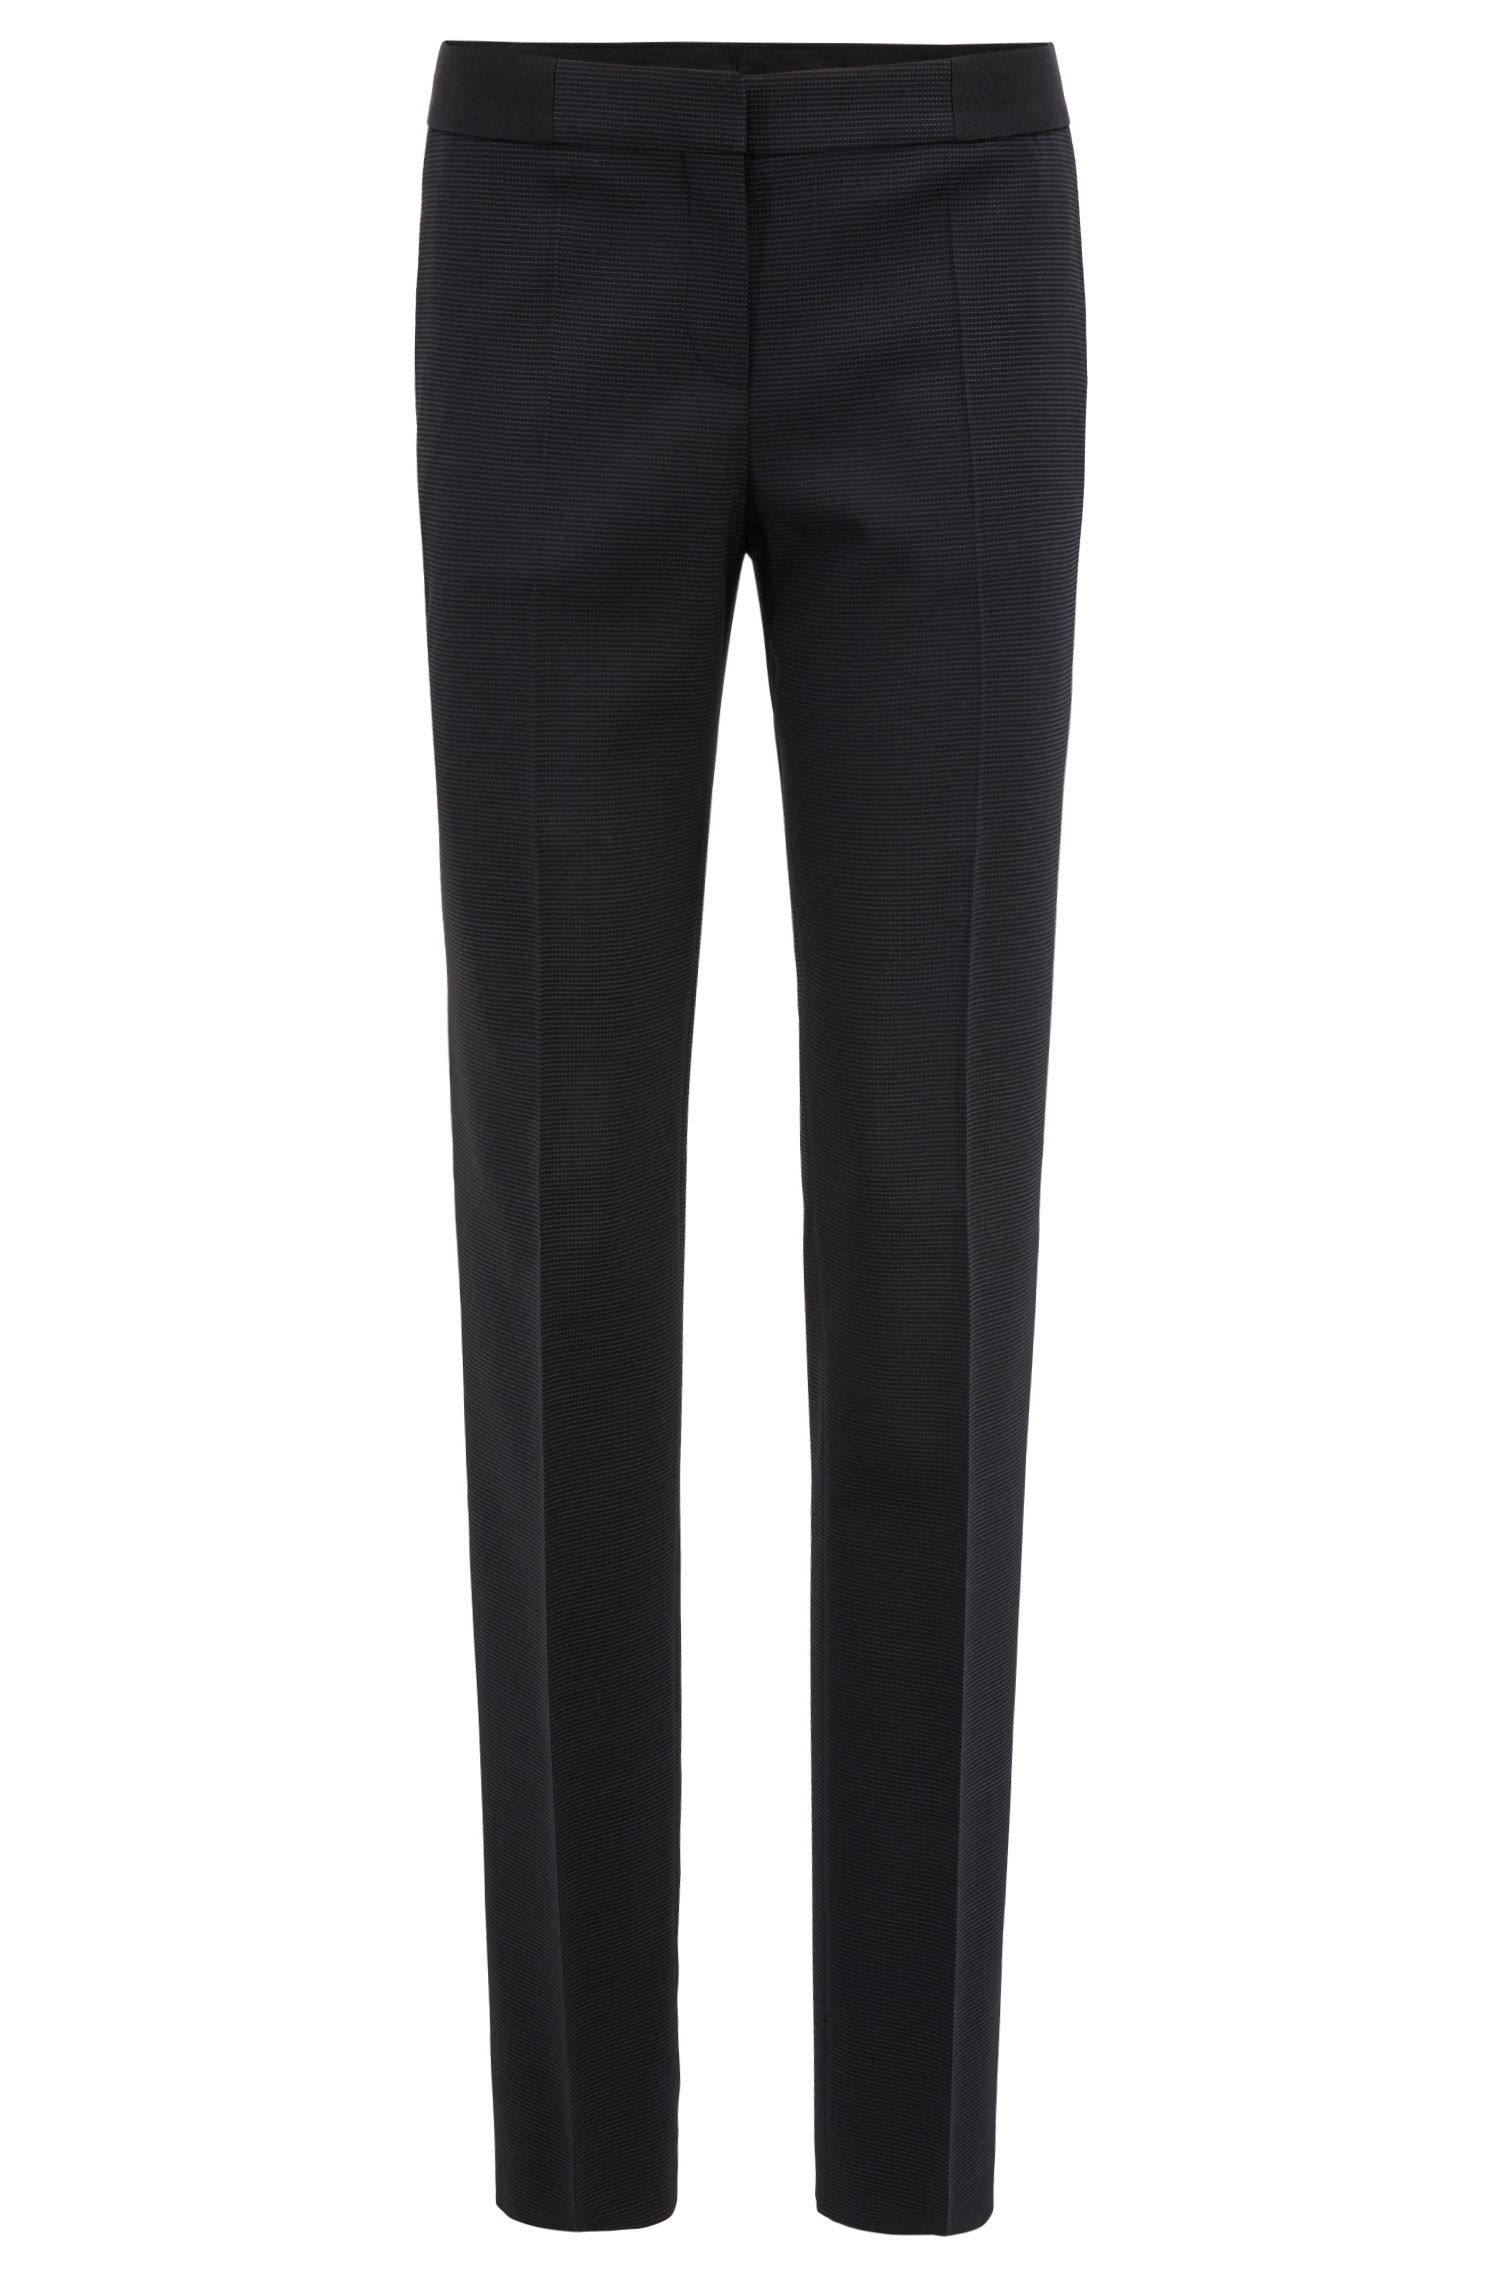 Straight-leg pants in structured stretch virgin wool, Patterned